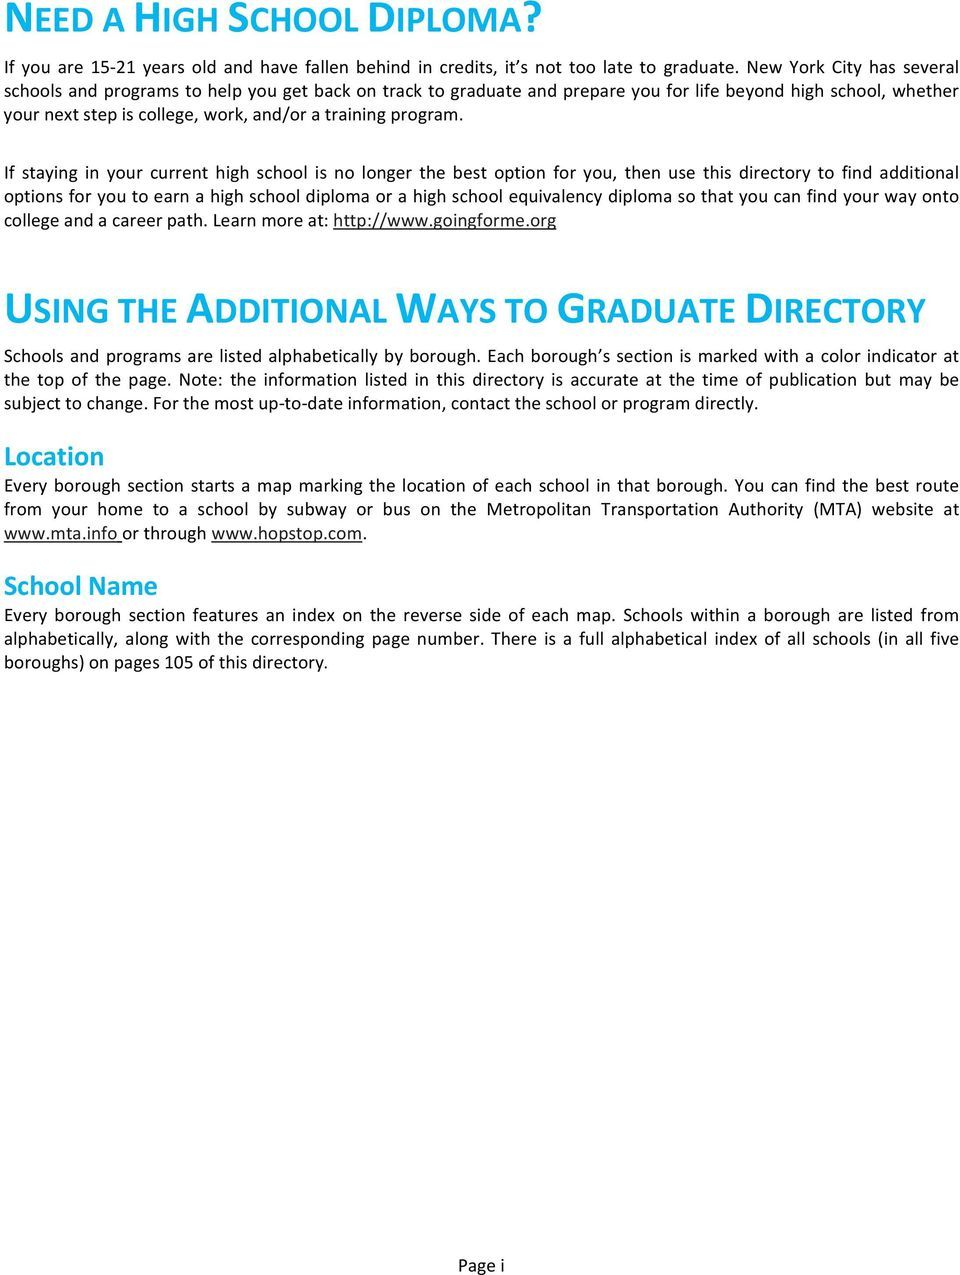 If staying in your current high school is no longer the best option for you, then use this directory to find additional